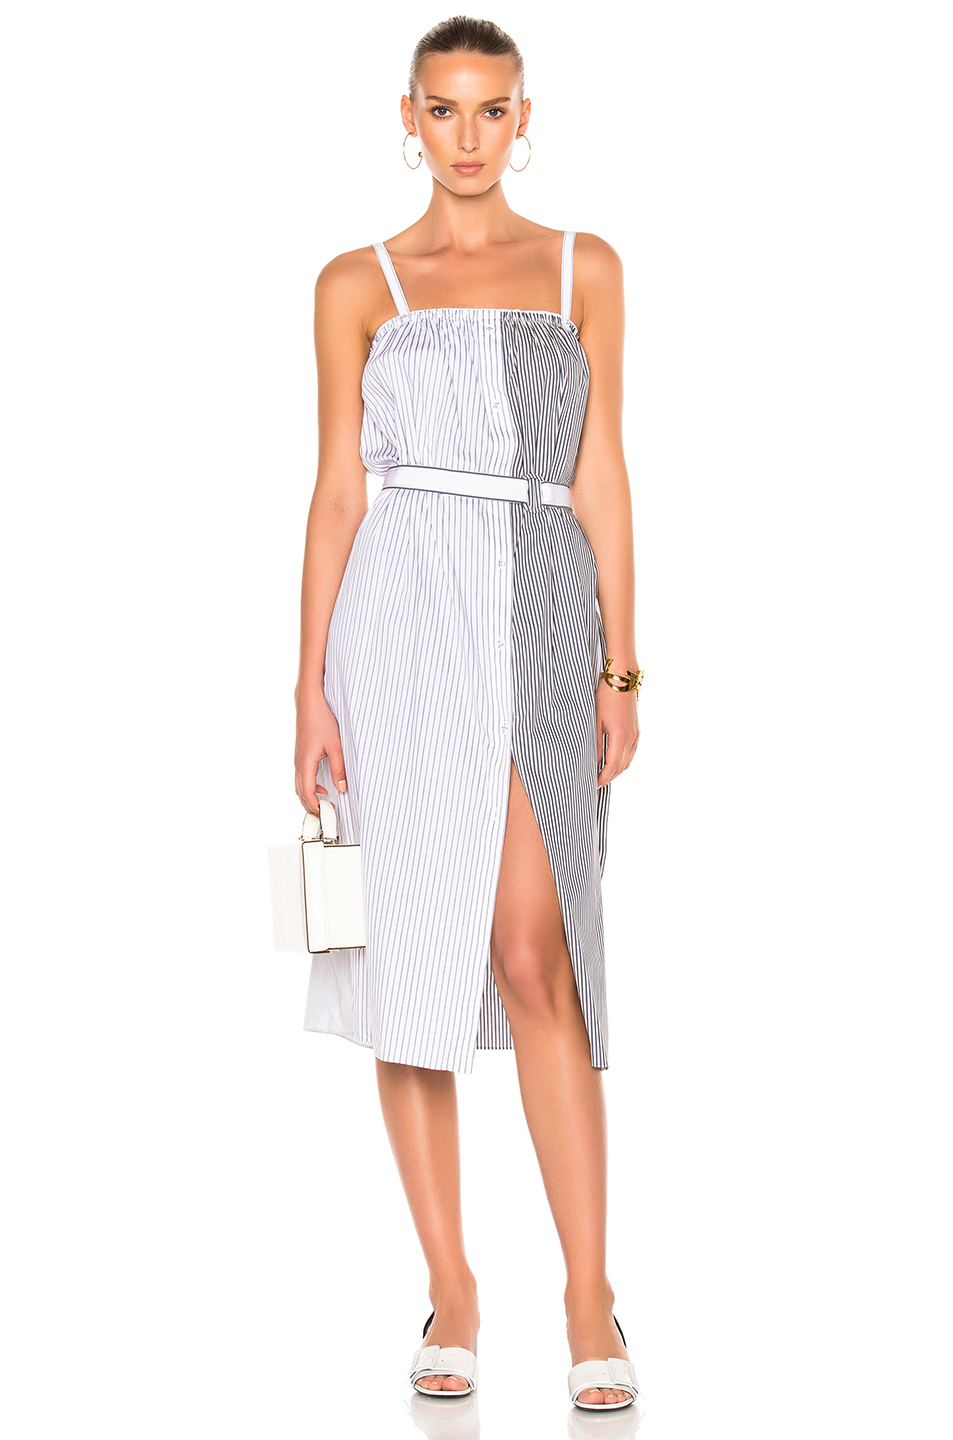 Photo of Victoria Victoria Beckham Panel Cami Dress in Black,Stripes,White online sales